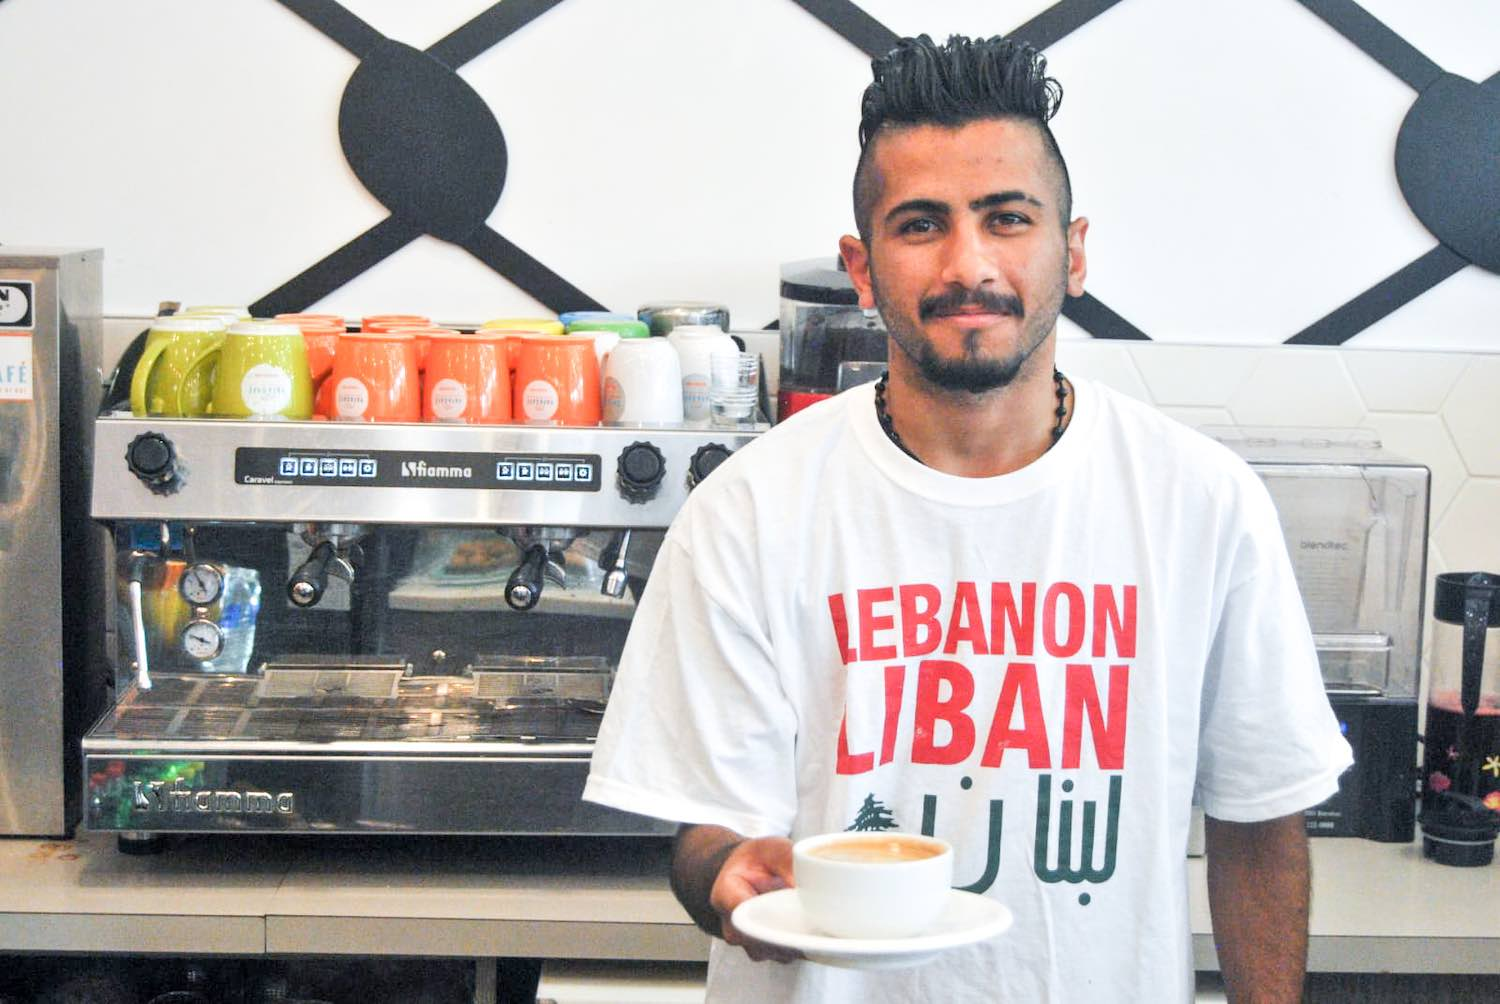 Server wearing Lebanon t-shirt